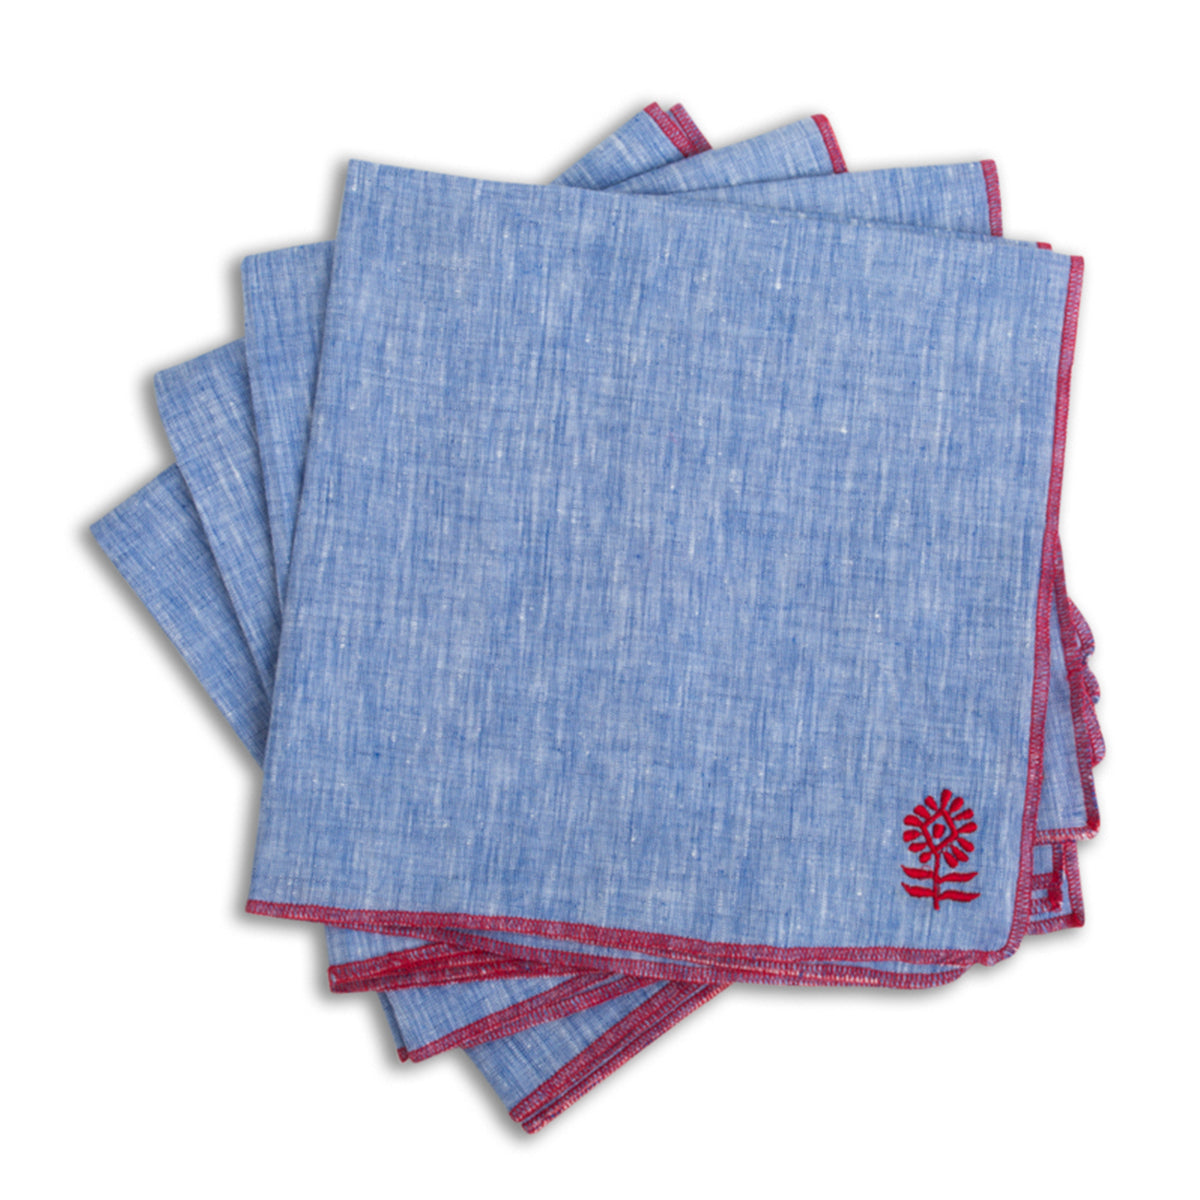 Furbish Studio - Icon Linen Napkin in Azure with Cherry Red embroidery edge and custom logo